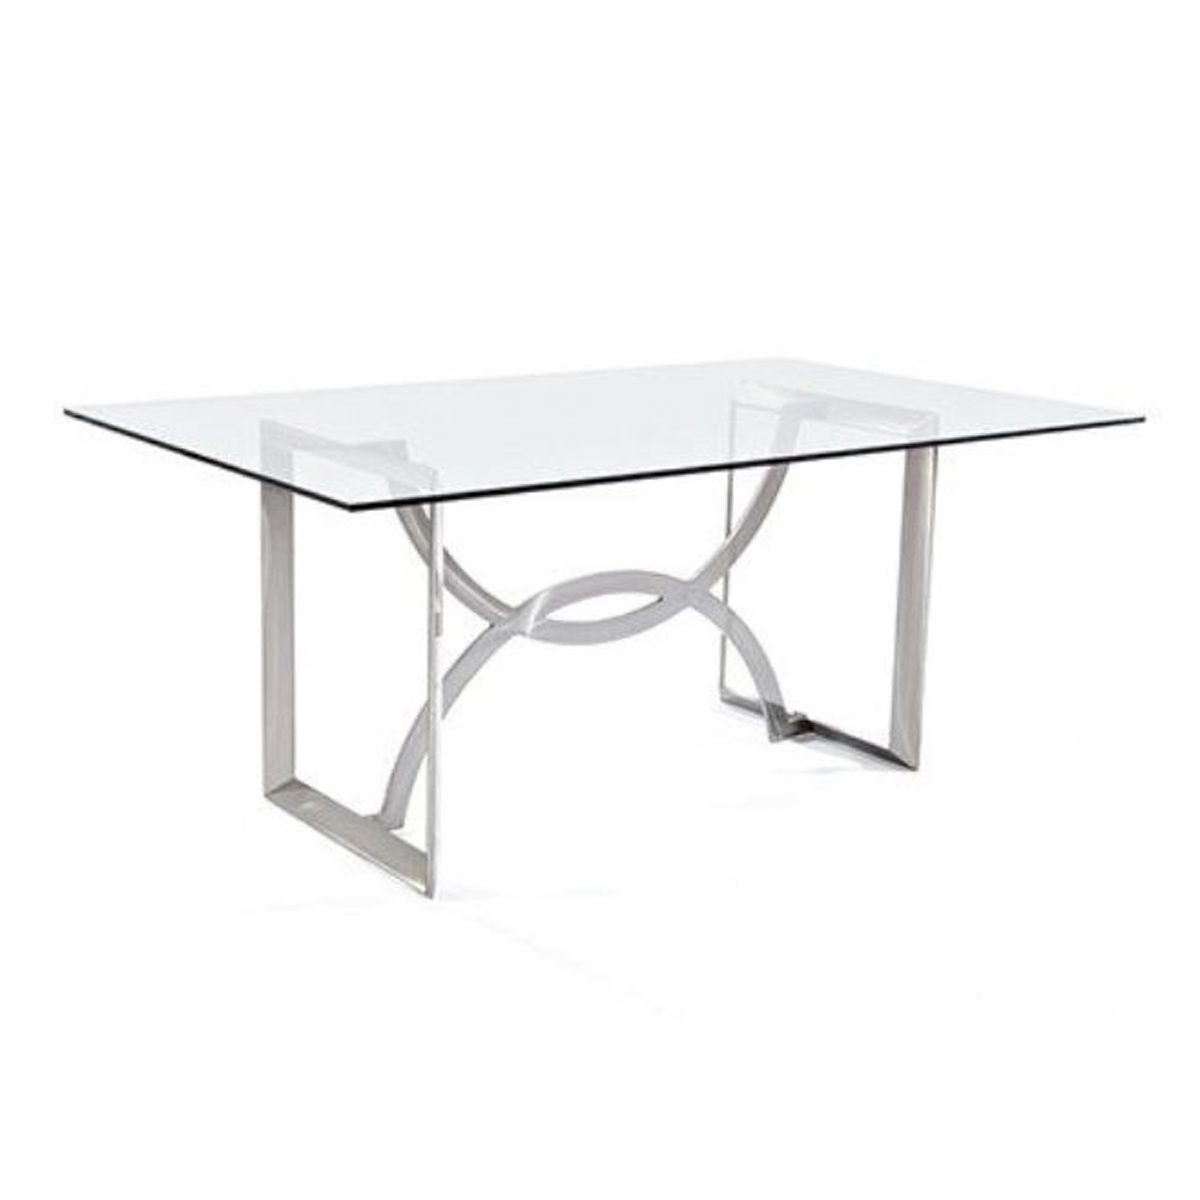 Brooks Rectangle Dining Table | Johnston Casuals | King Dinettes Intended For Most Popular Brooks Dining Tables (View 24 of 25)